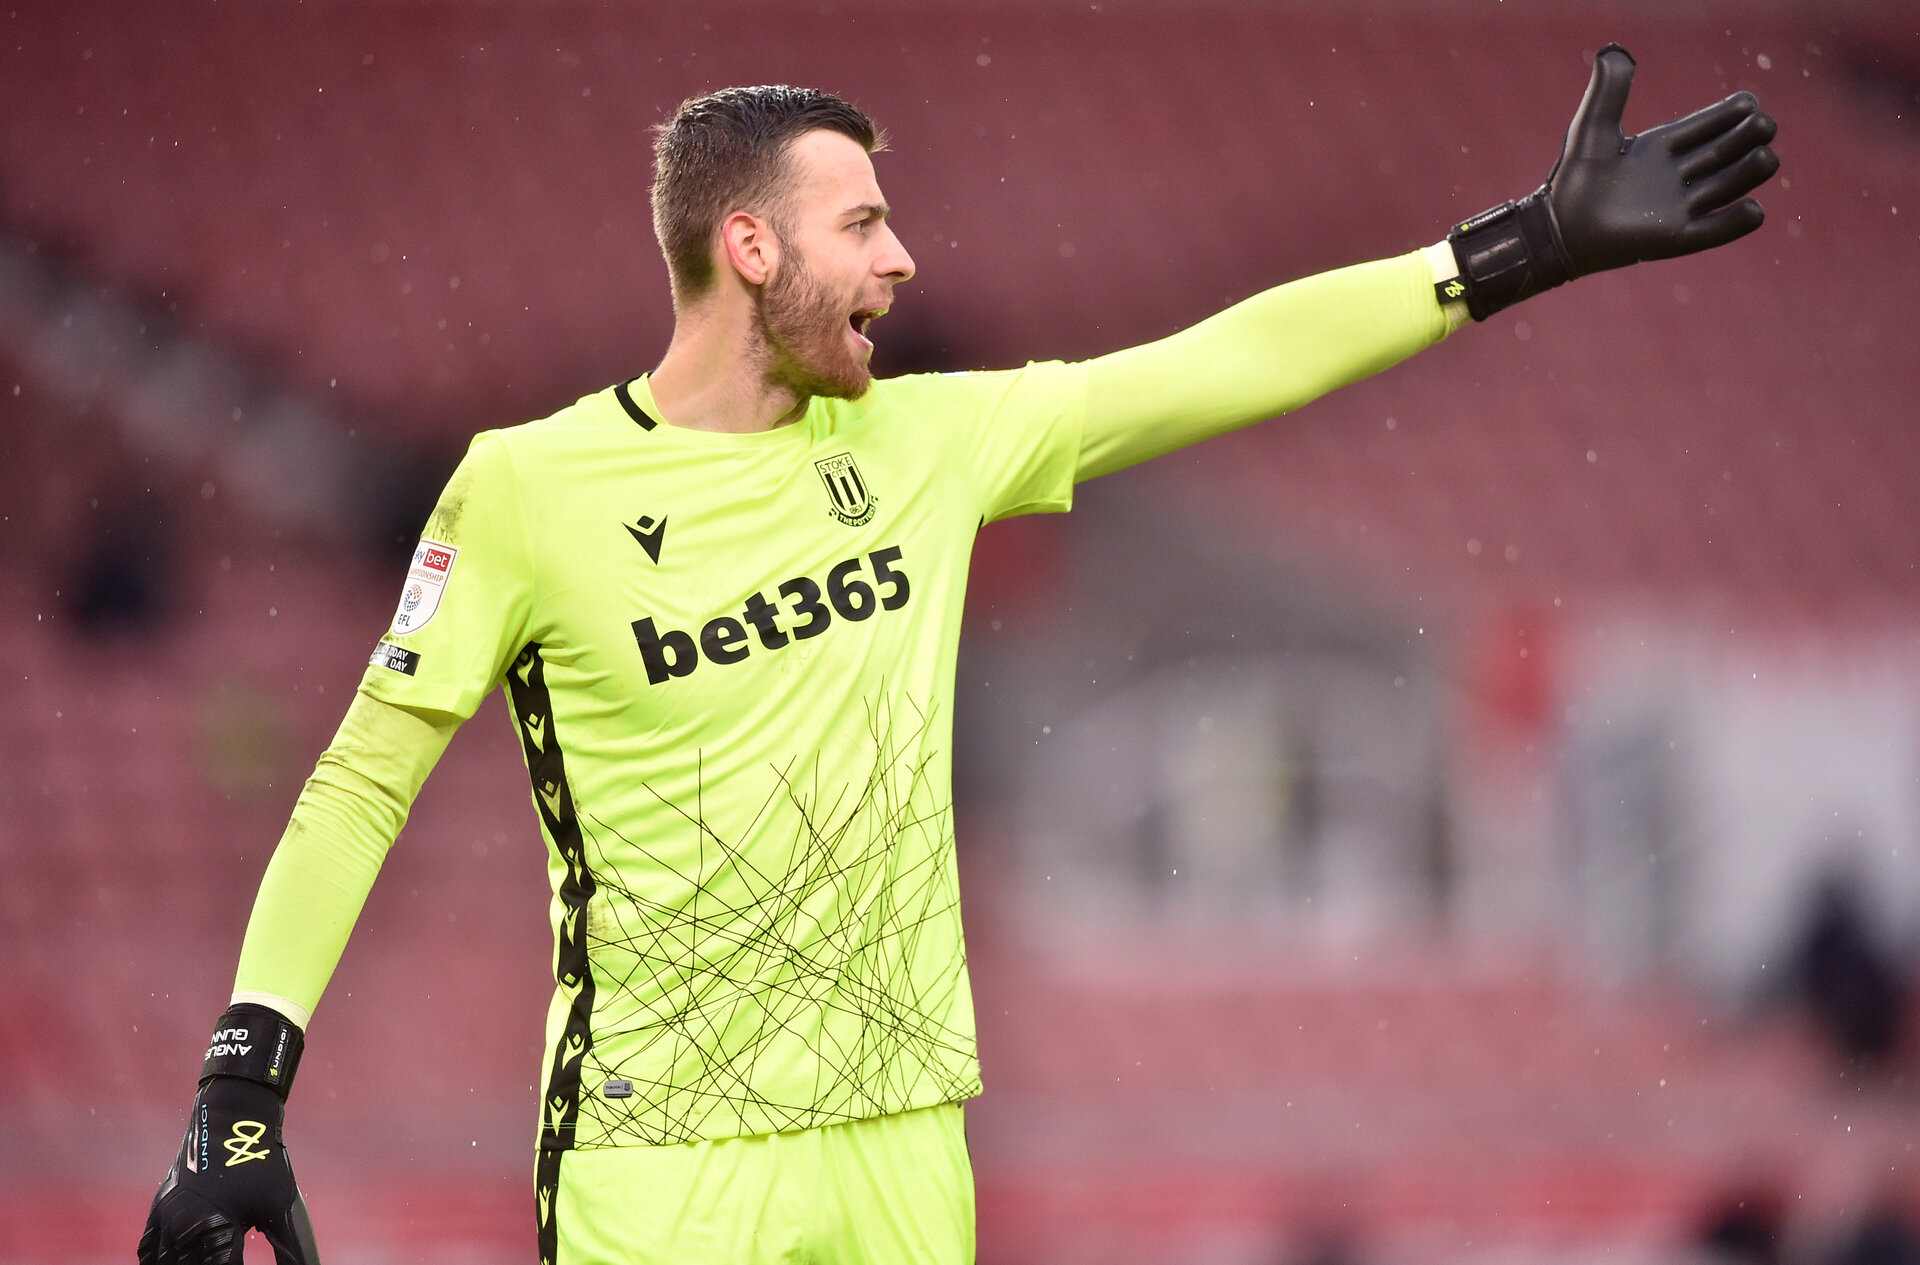 STOKE ON TRENT, ENGLAND - FEBRUARY 06: Angus Gunn of Stoke City gestures during the Sky Bet Championship match between Stoke City and Reading at Bet365 Stadium on February 06, 2021 in Stoke on Trent, England. Sporting stadiums around the UK remain under strict restrictions due to the Coronavirus Pandemic as Government social distancing laws prohibit fans inside venues resulting in games being played behind closed doors. (Photo by Nathan Stirk/Getty Images)